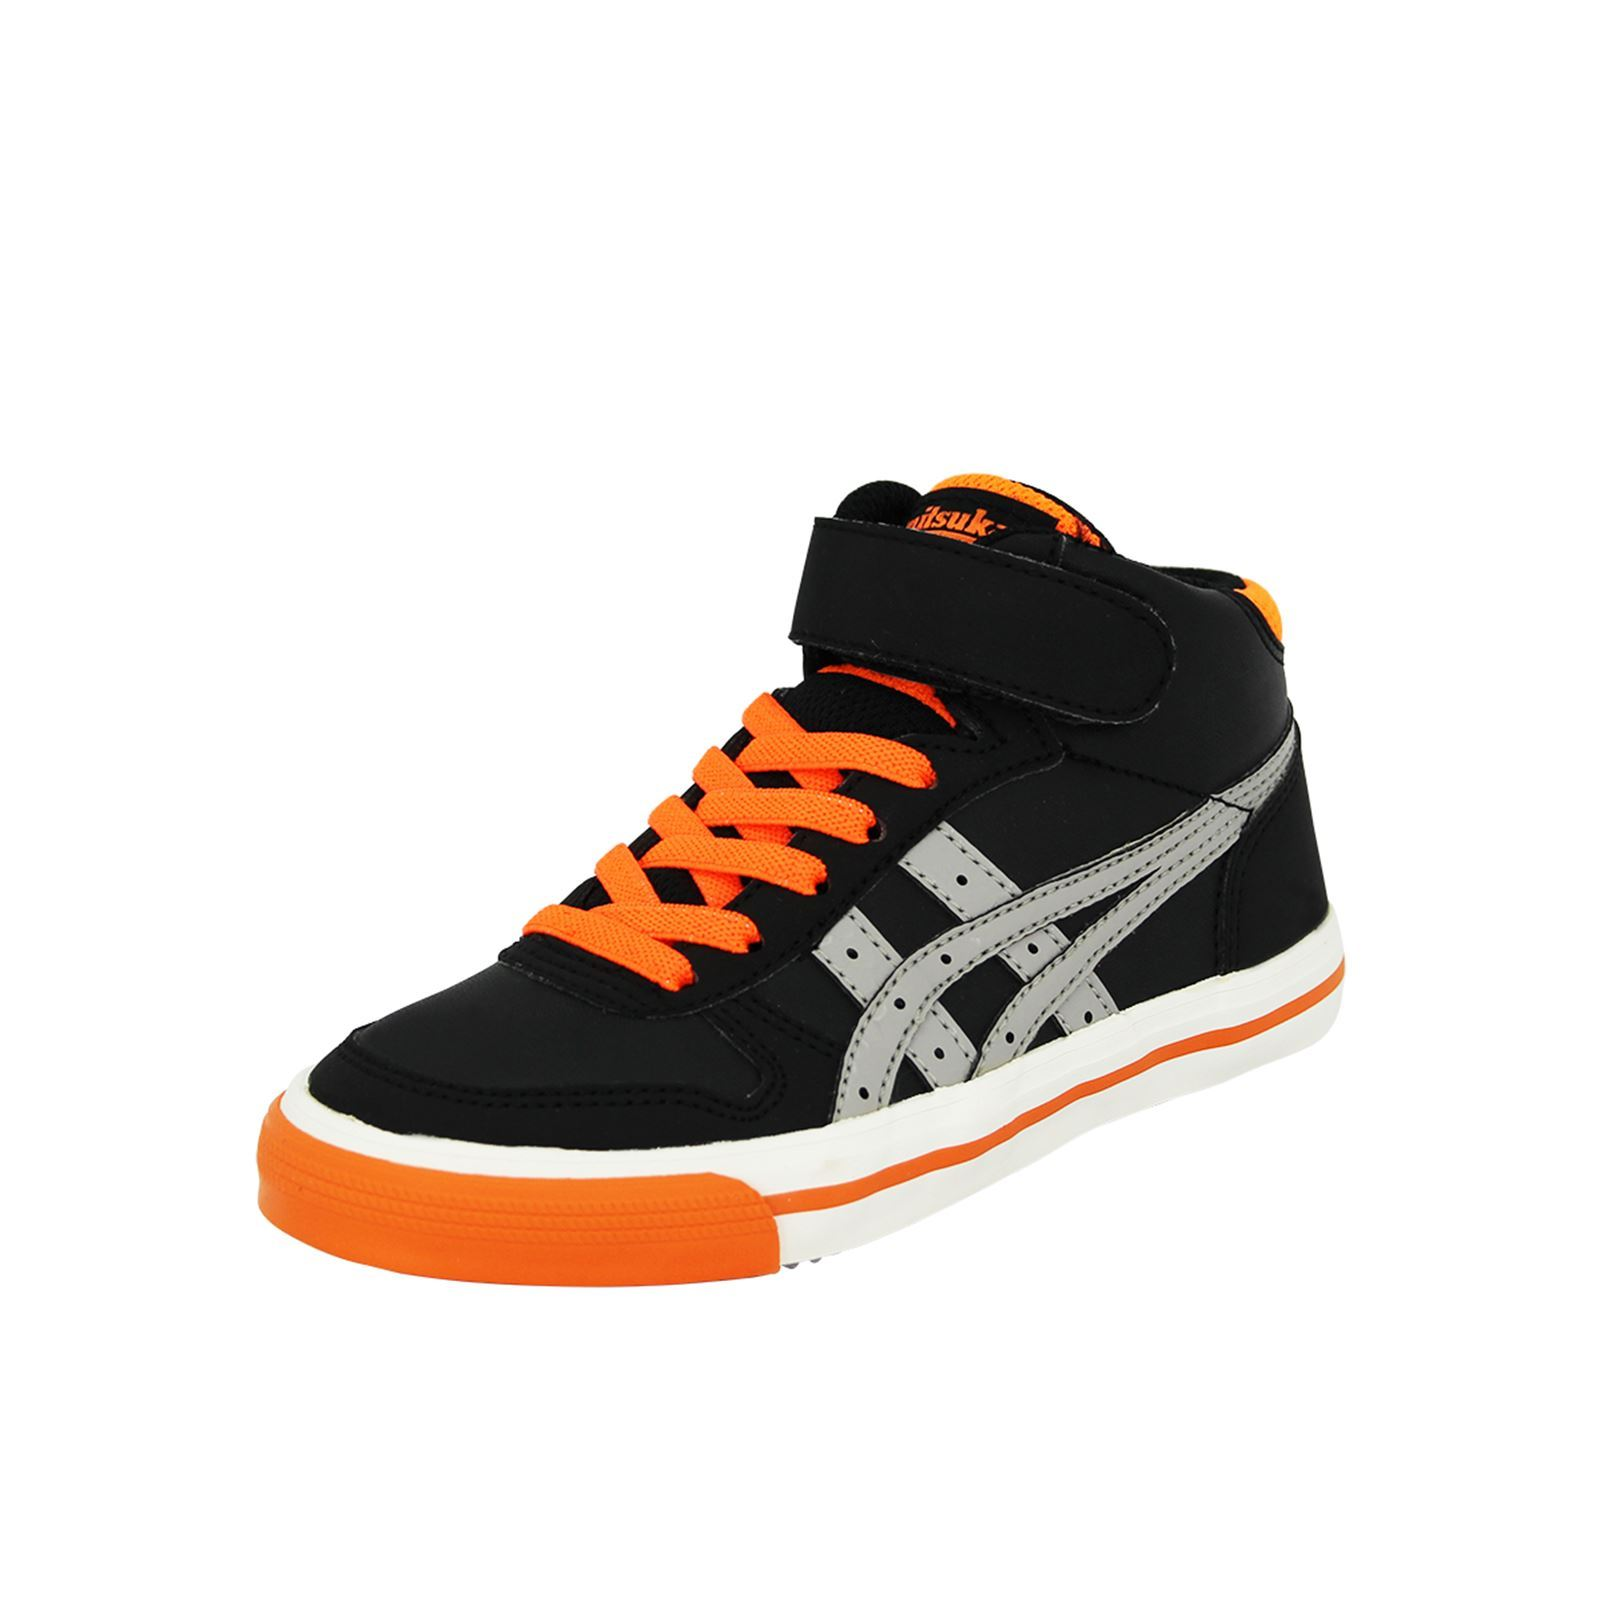 asics aaron mt ps